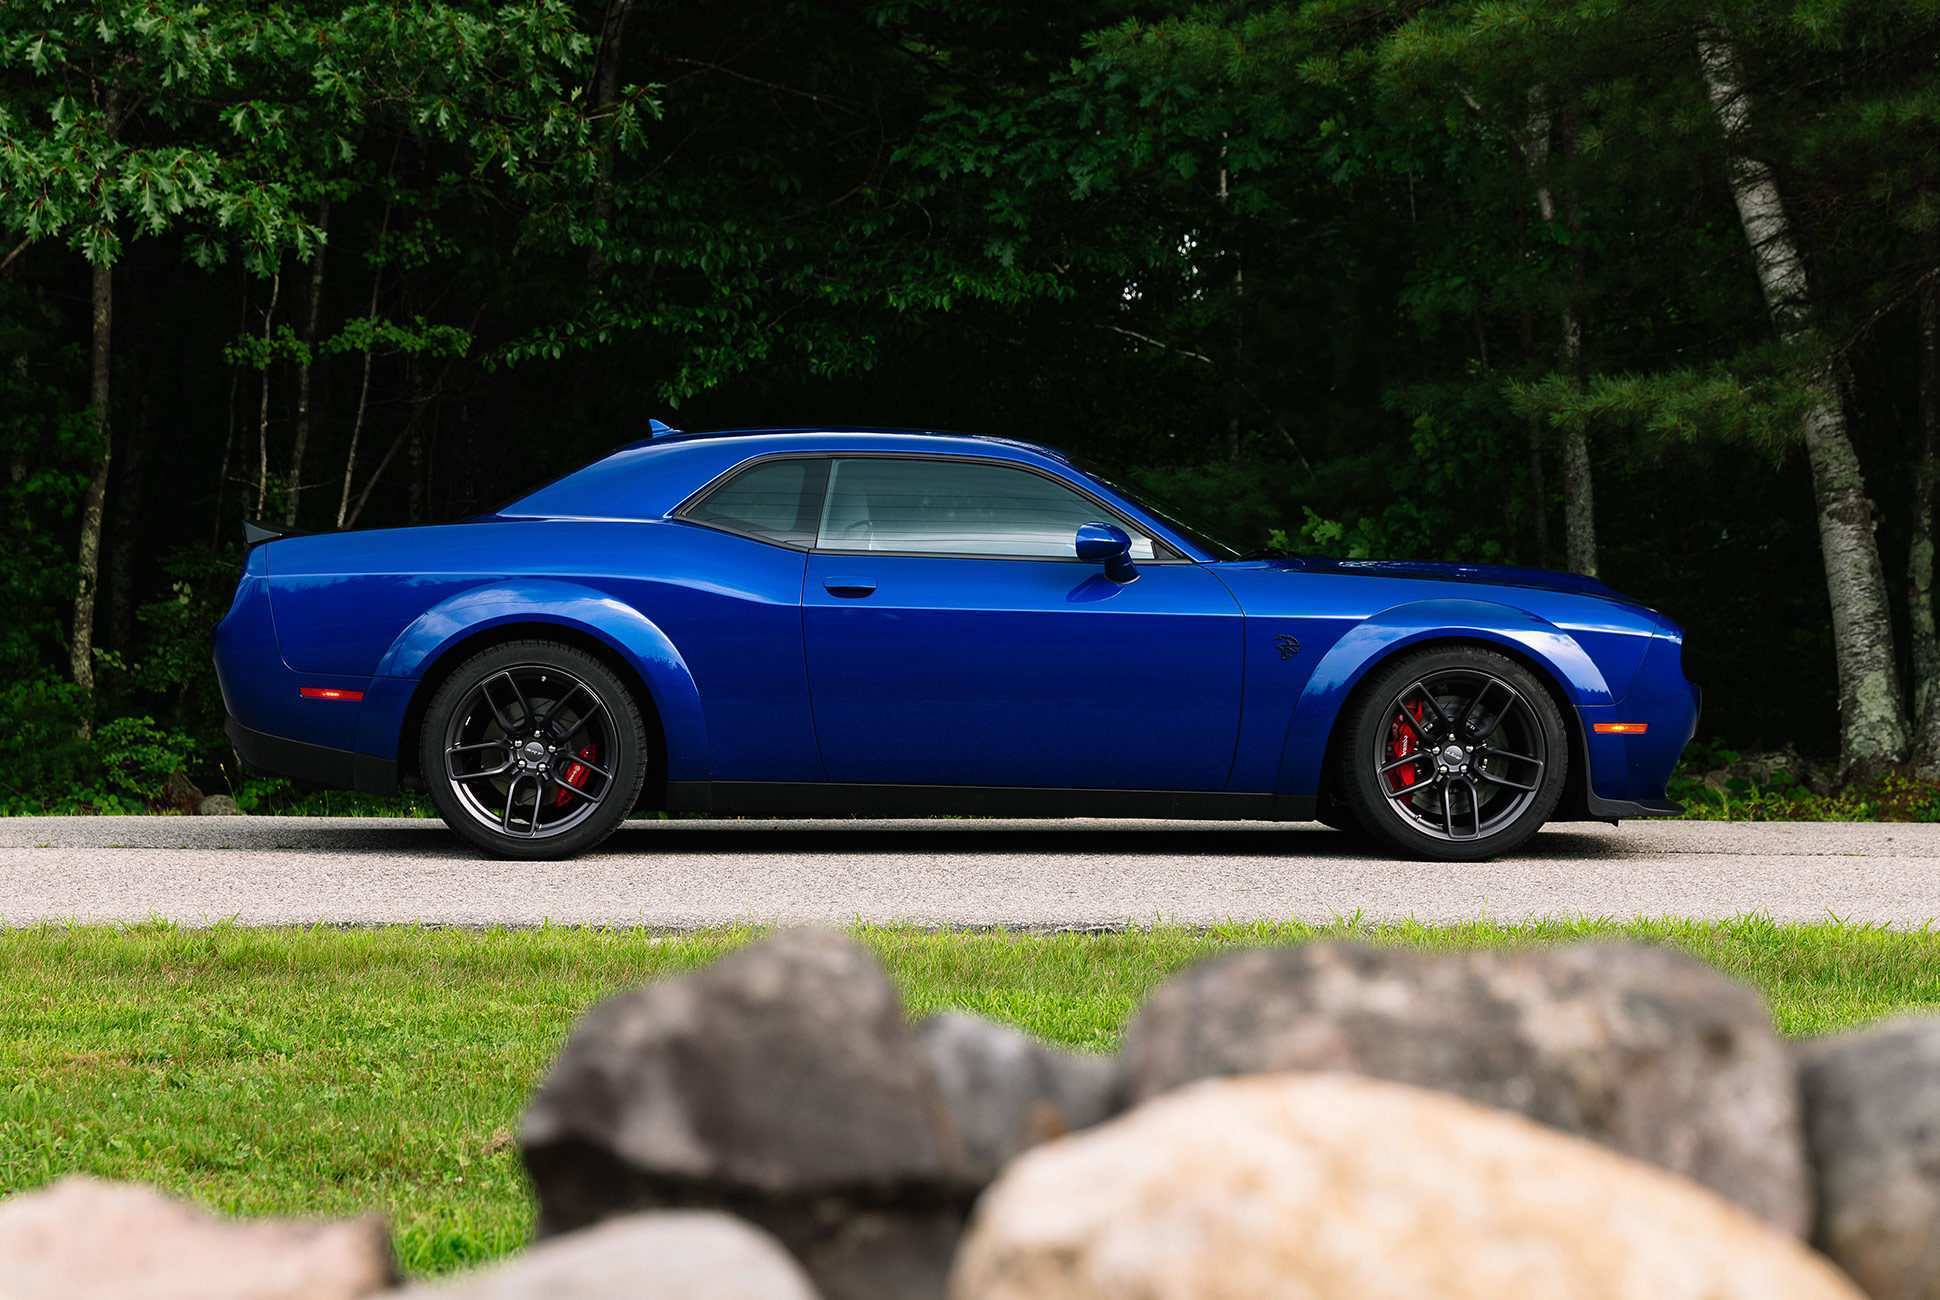 74 Great 2019 Dodge Hellcat Widebody Reviews for 2019 Dodge Hellcat Widebody